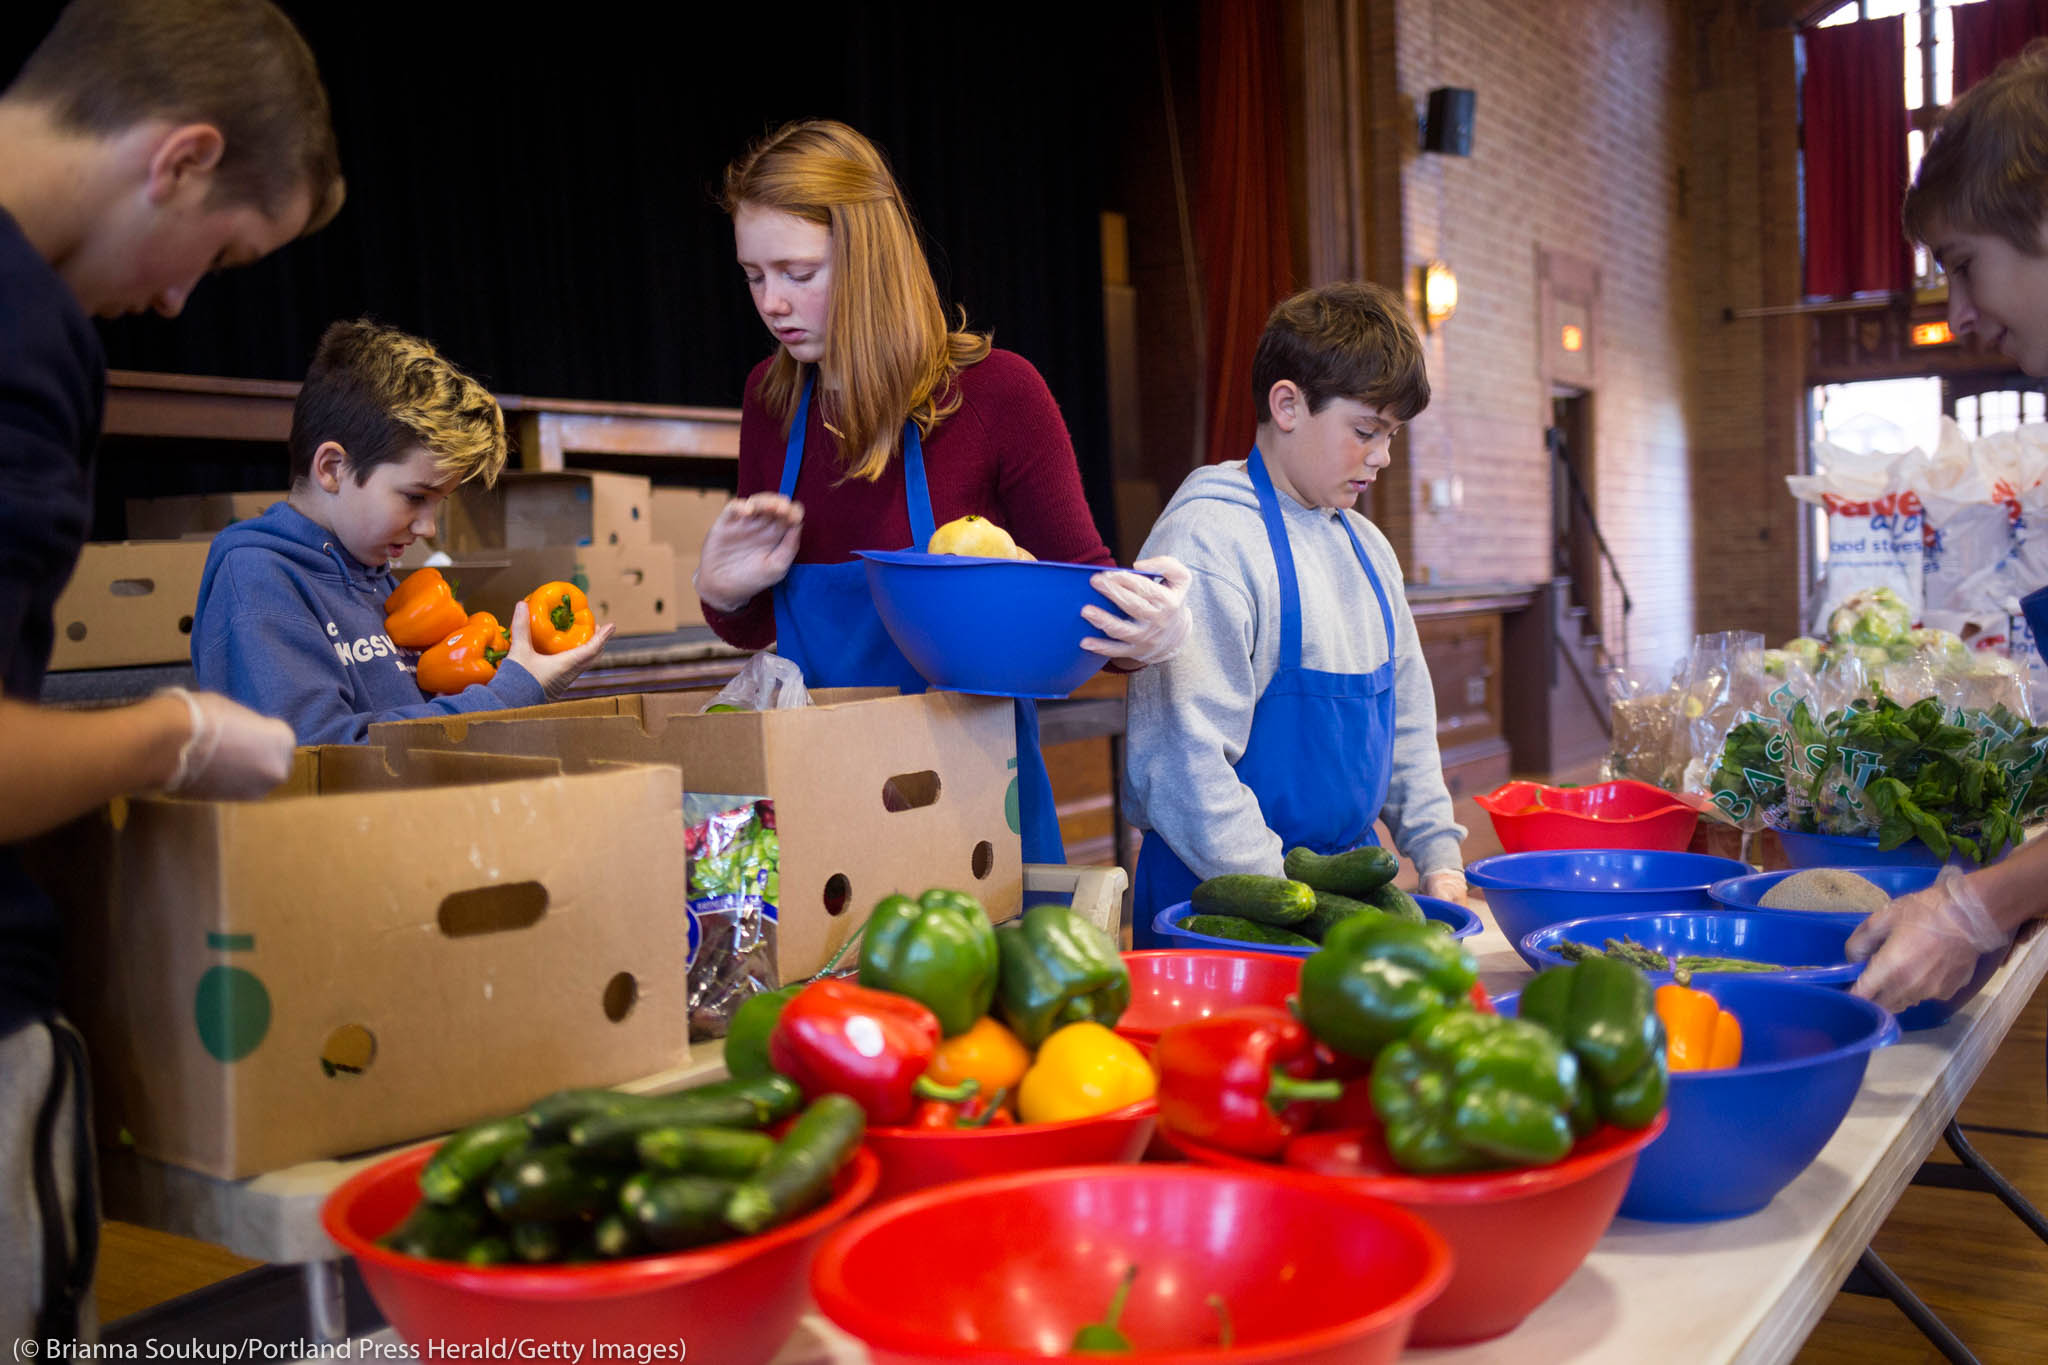 Young people working with containers of food (© Brianna Soukup/Portland Press Herald/Getty Images)